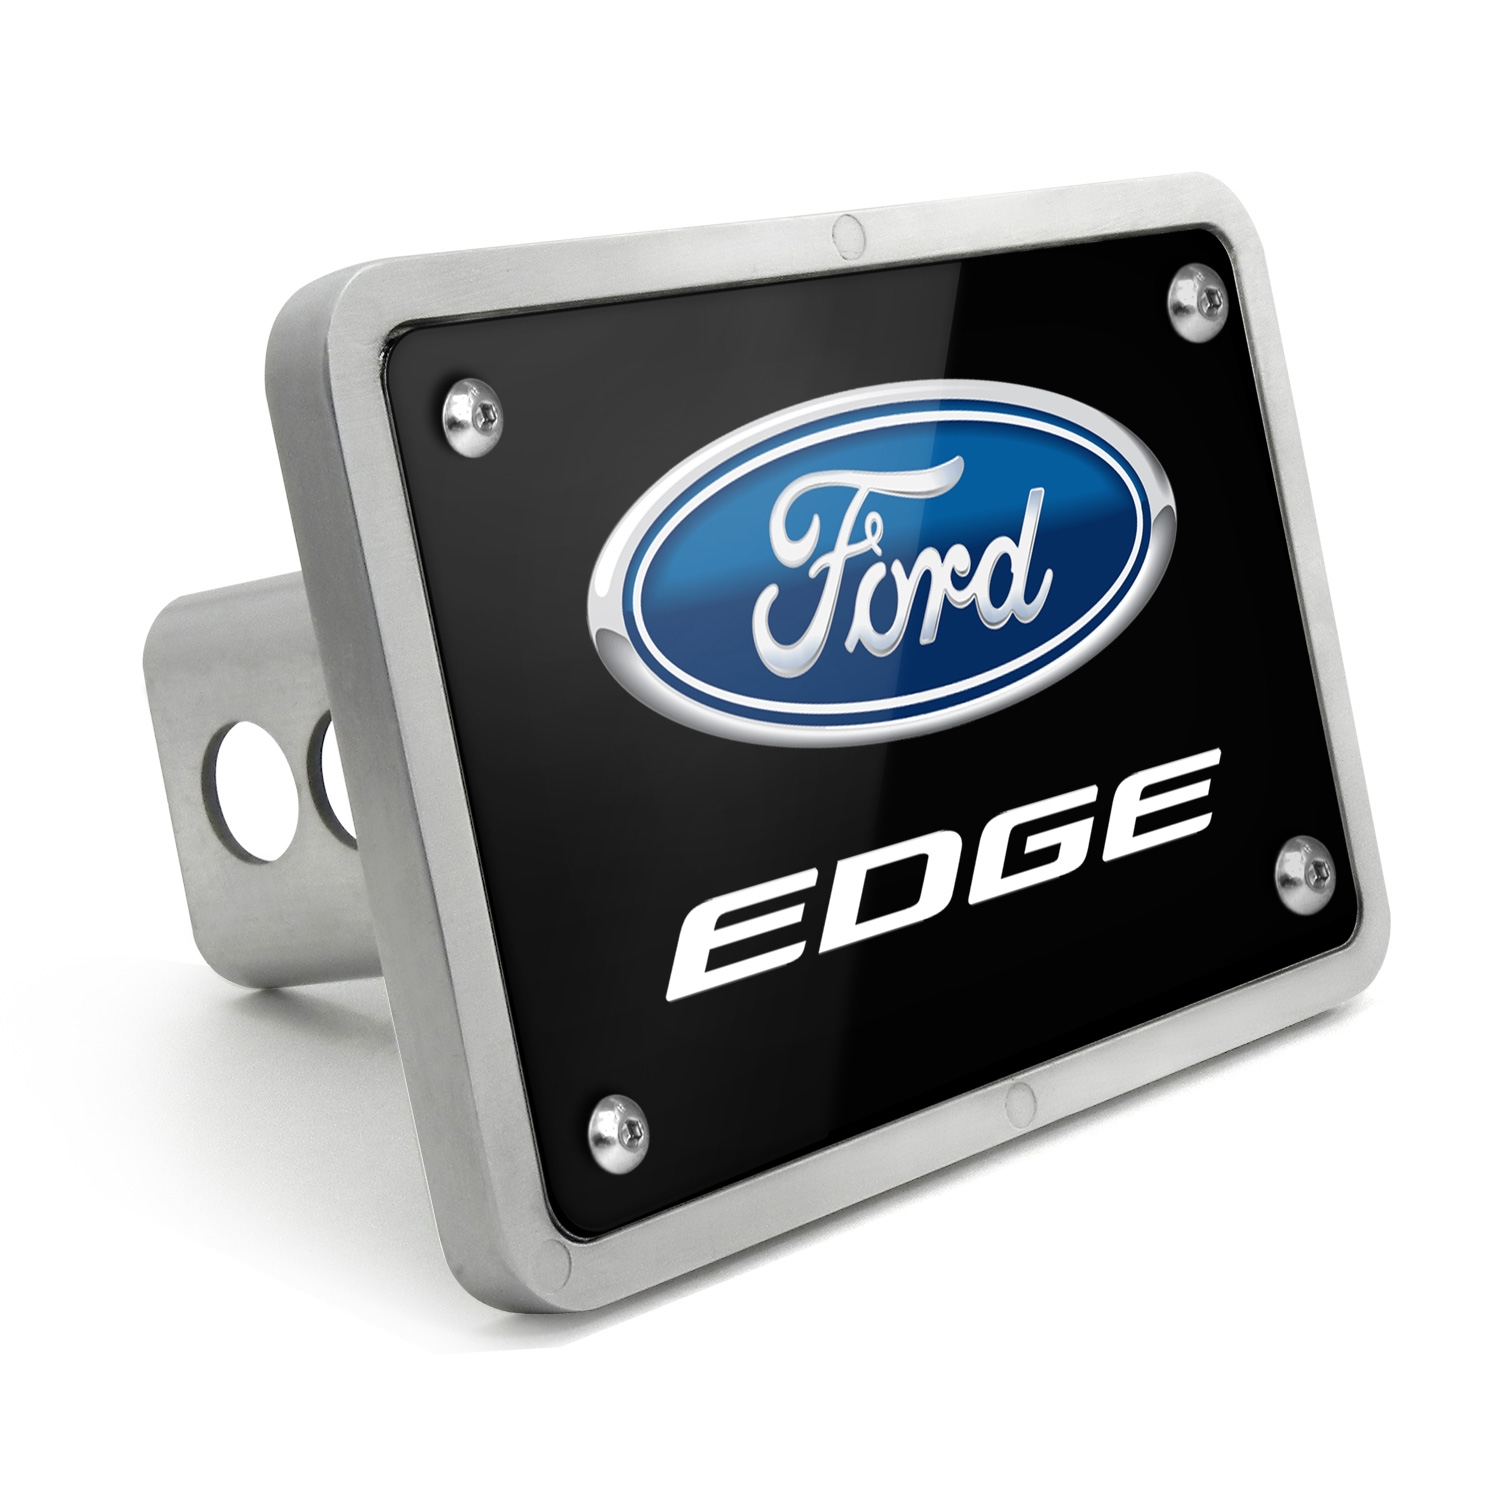 Ford Edge Uv Graphic Black Plate Billet Aluminum  Inch Tow Hitch Cover